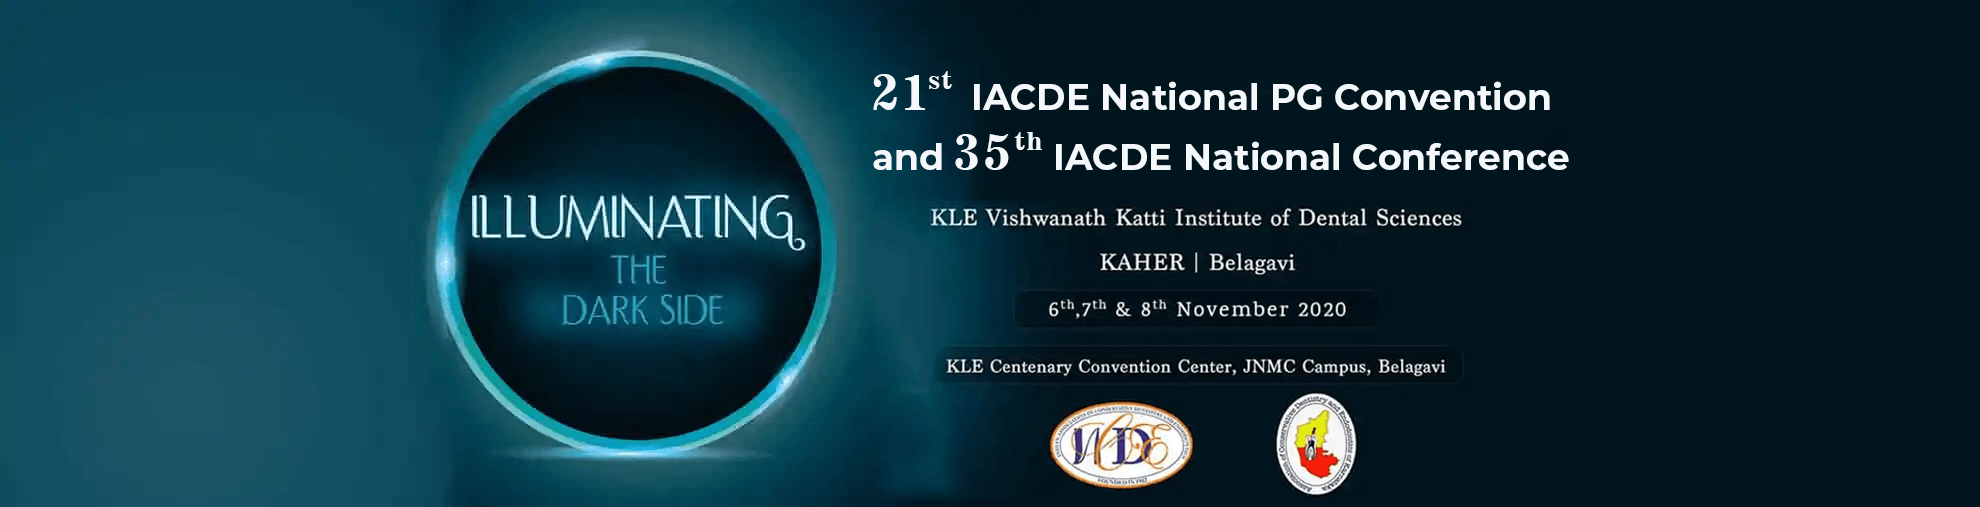 21st IACDE National PG Convention